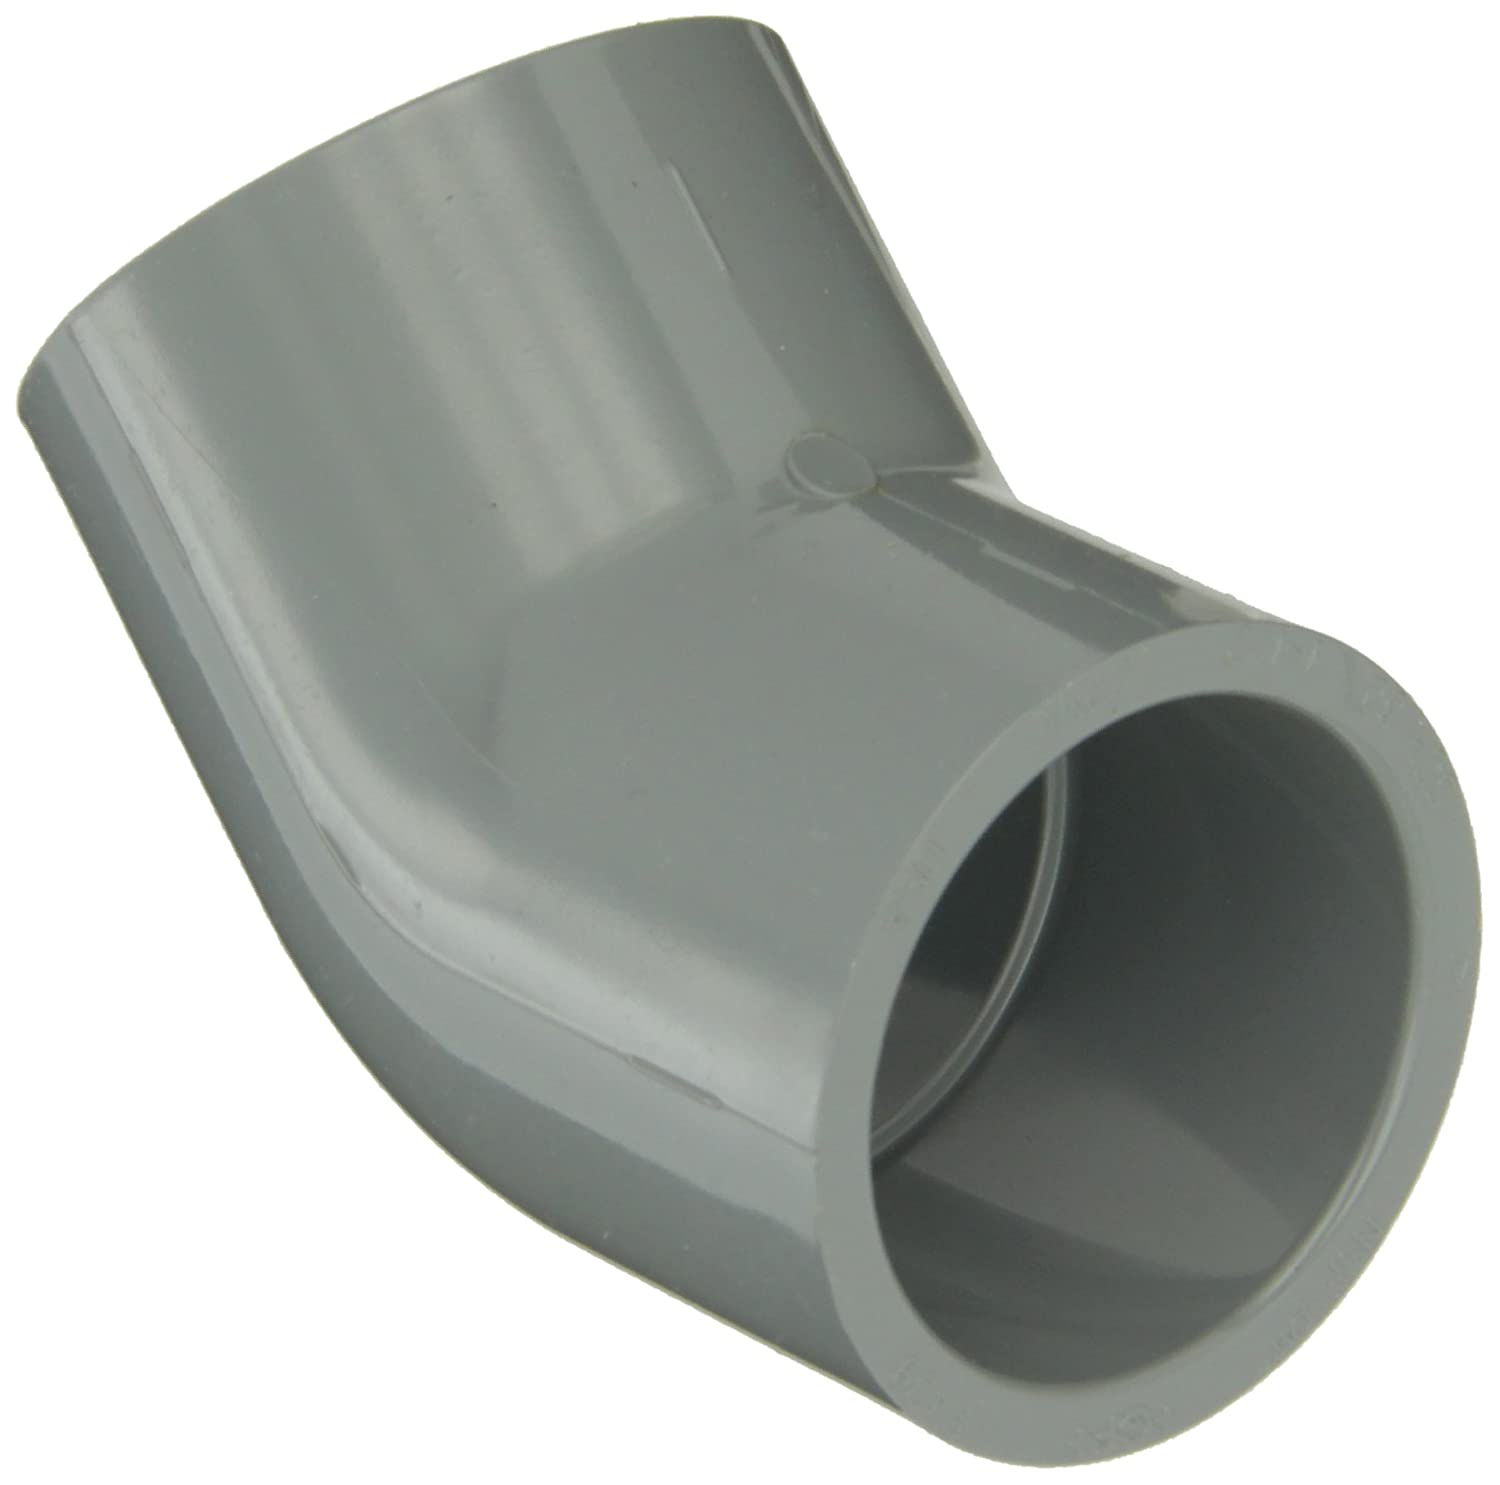 3 Slip Socket Schedule 80 45 Degree Elbow GF Piping Systems CPVC Pipe Fitting Gray